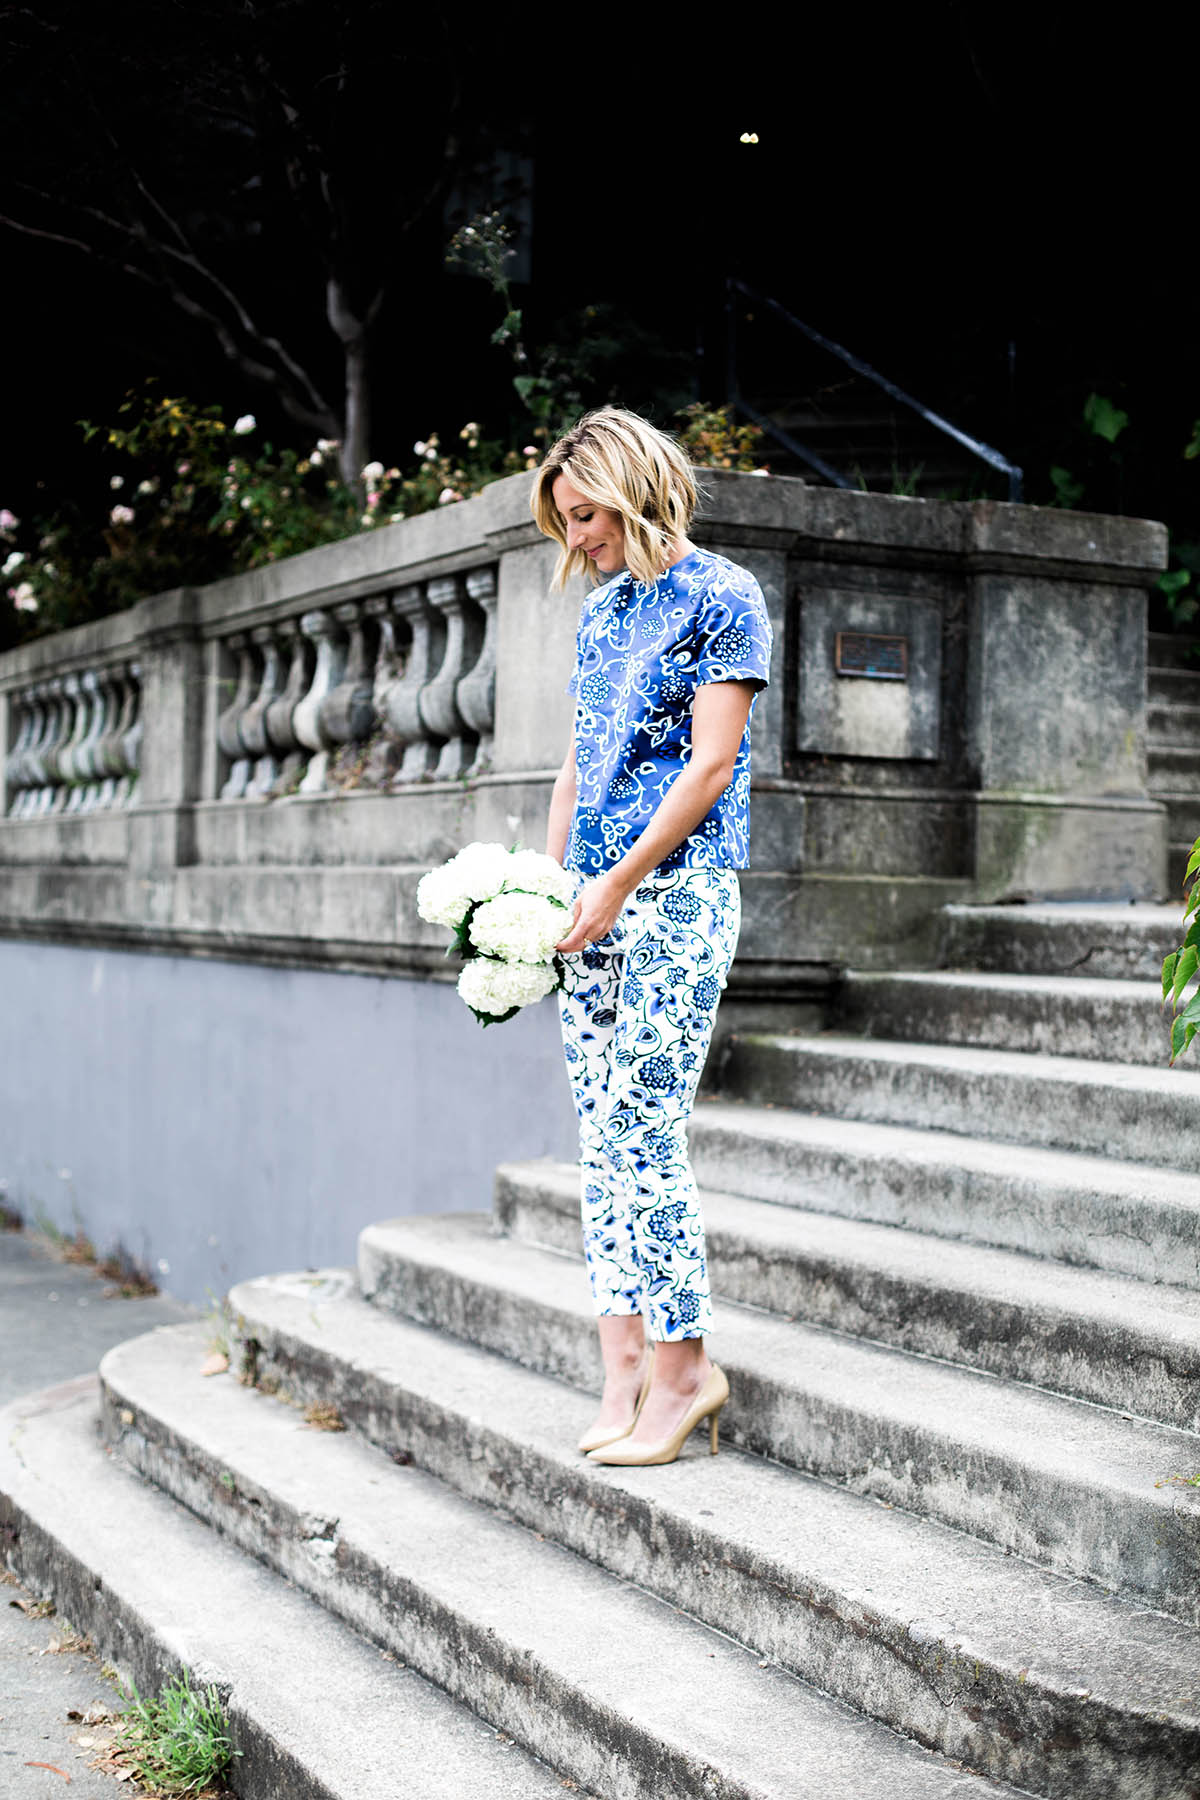 The Easiest Way to Wear Mixed Prints